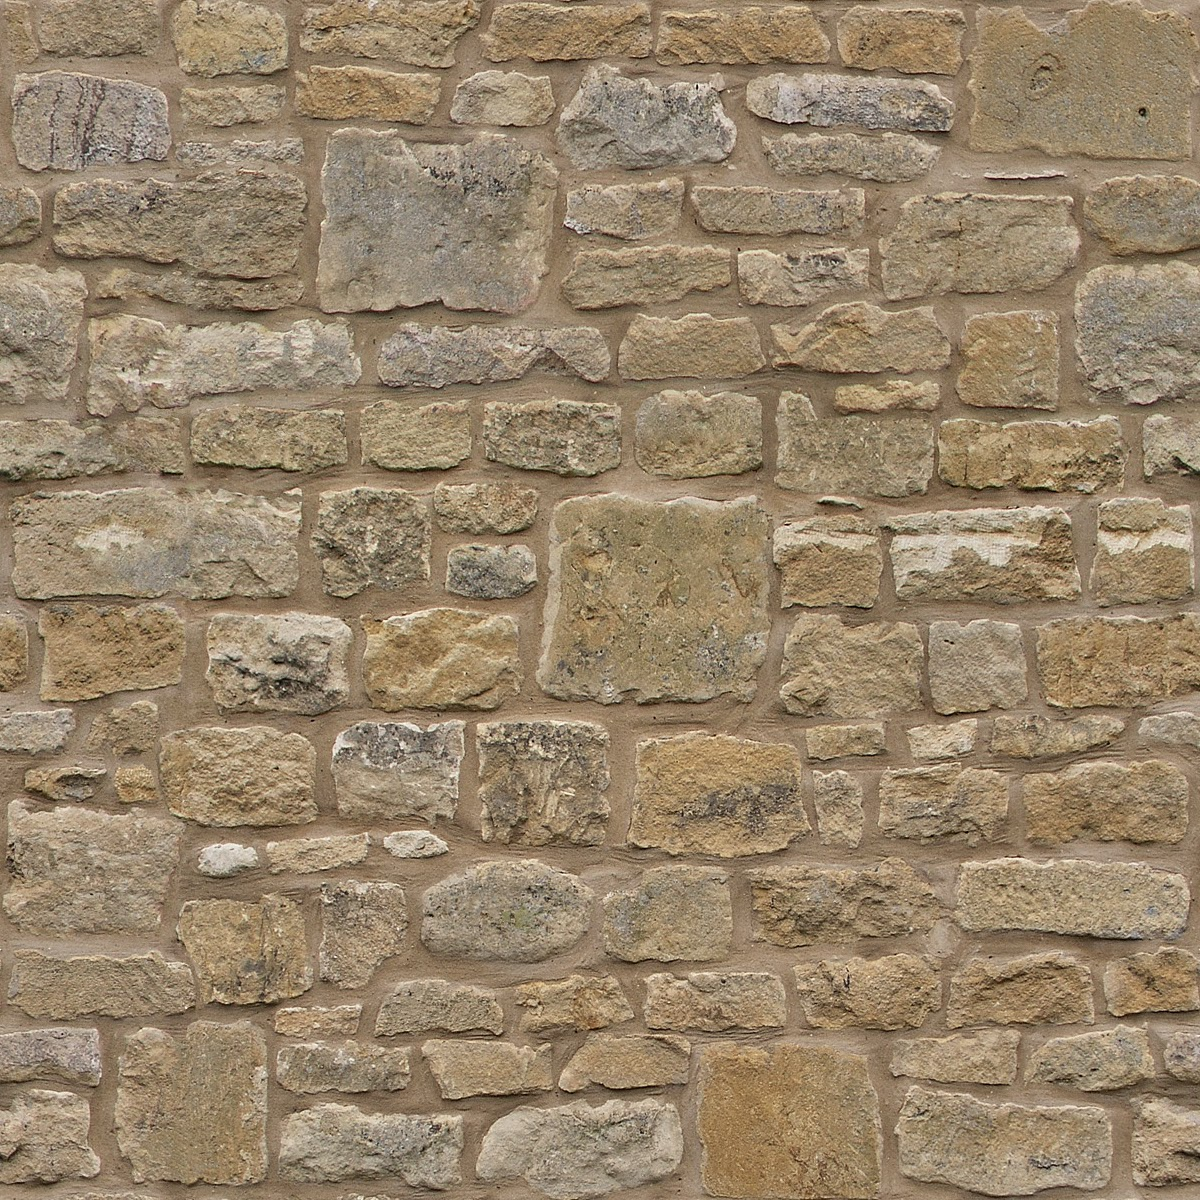 Tileable Stone Wall Texture Maps Texturise Free Seamless Textures With Maps